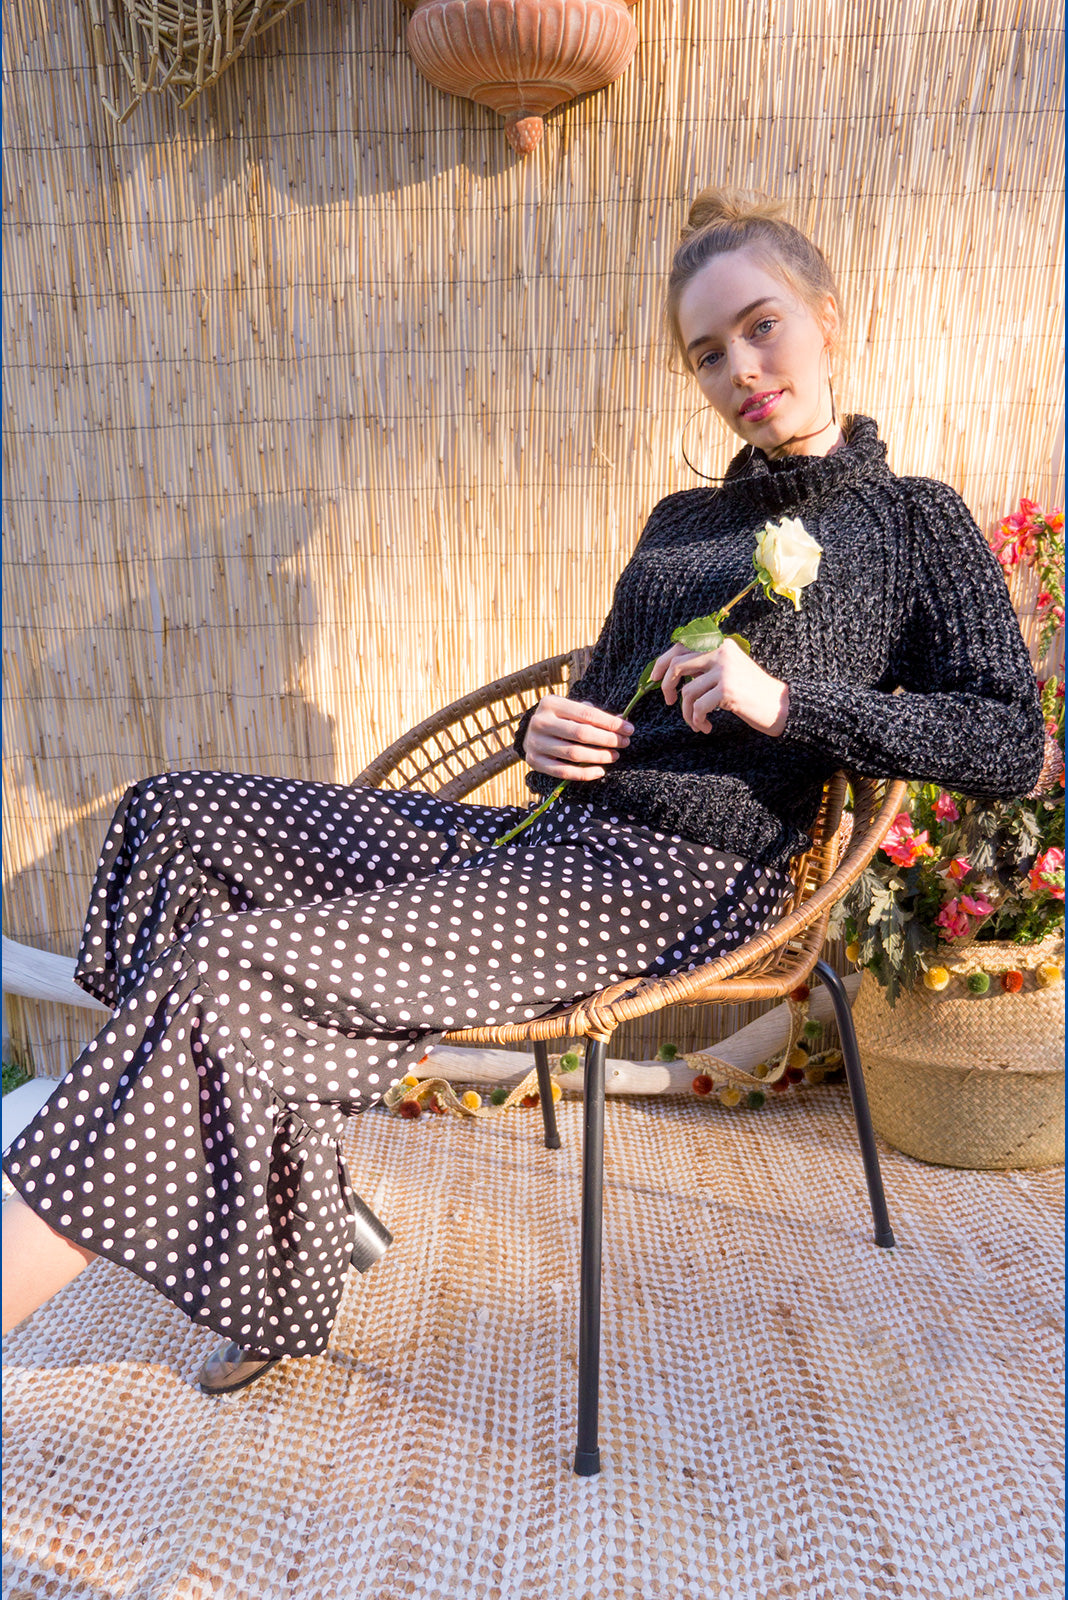 Wandering Pants Black Spot Square feature a slim leg with a wide frill around the hem for a retro vintage style, the black and blush spot design is printed onto woven rayon